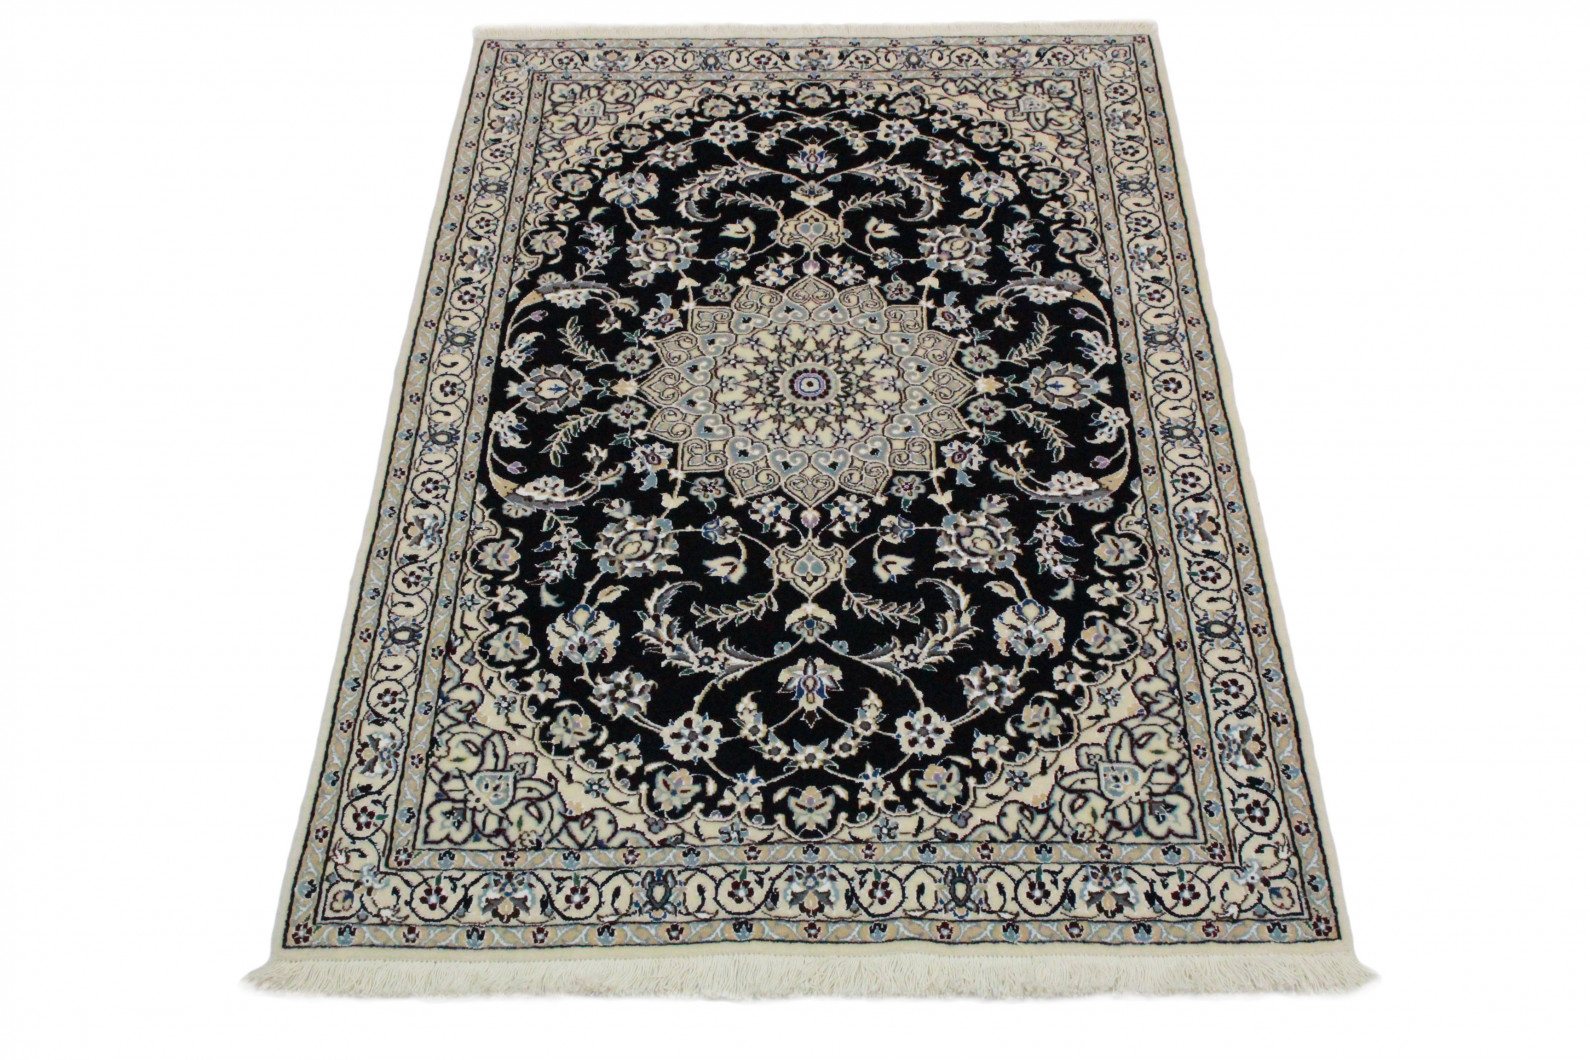 nain teppich beige blau in 150x100 5120 23479 bei kaufen. Black Bedroom Furniture Sets. Home Design Ideas